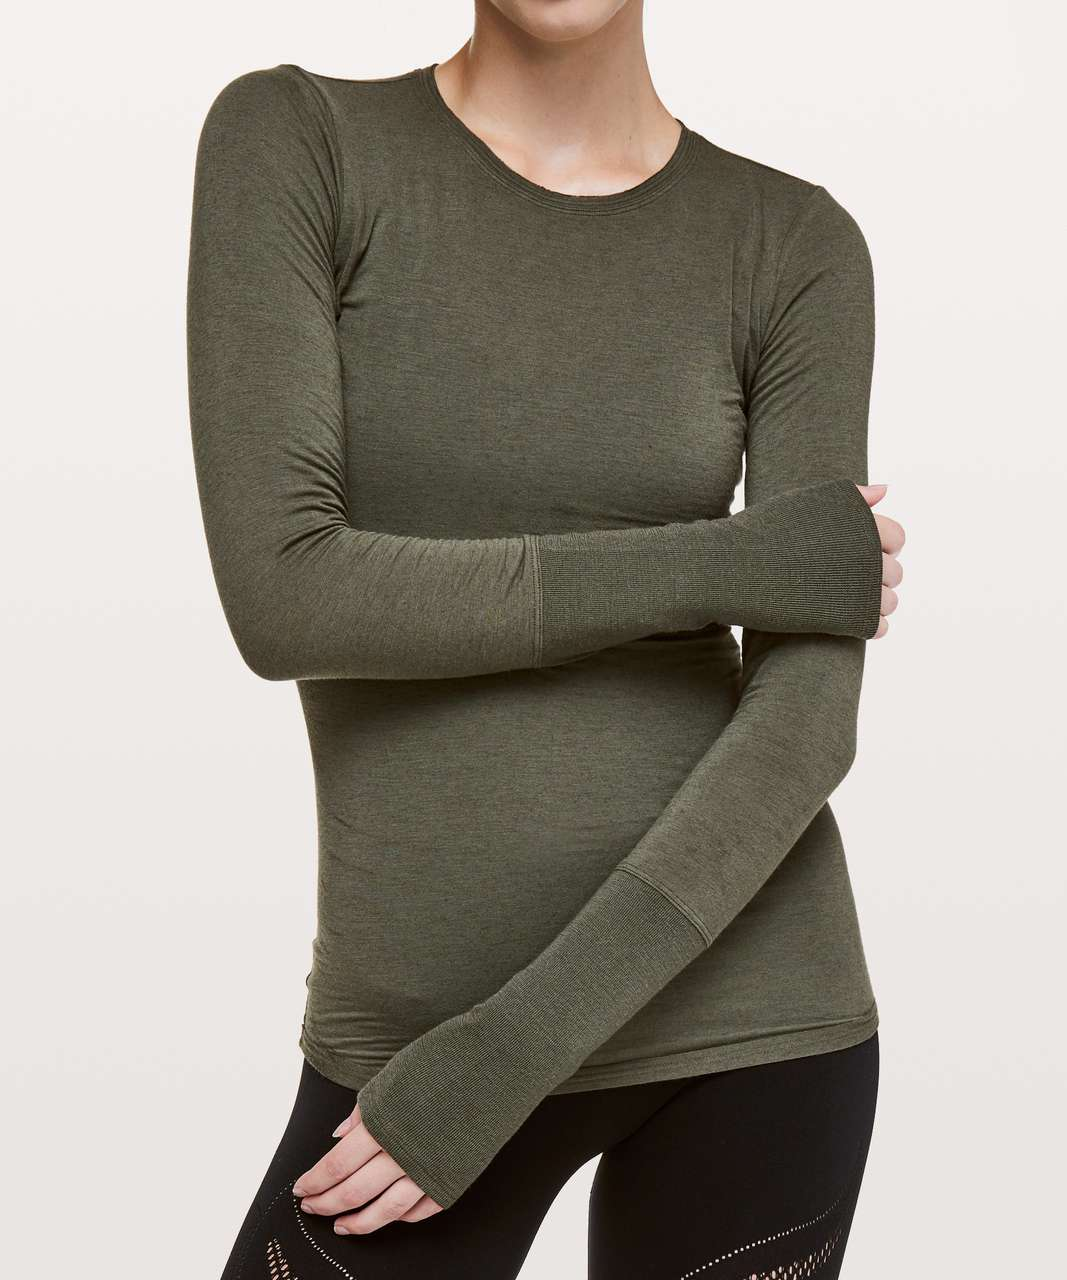 Lululemon Principal Dancer Long Sleeve - Armory